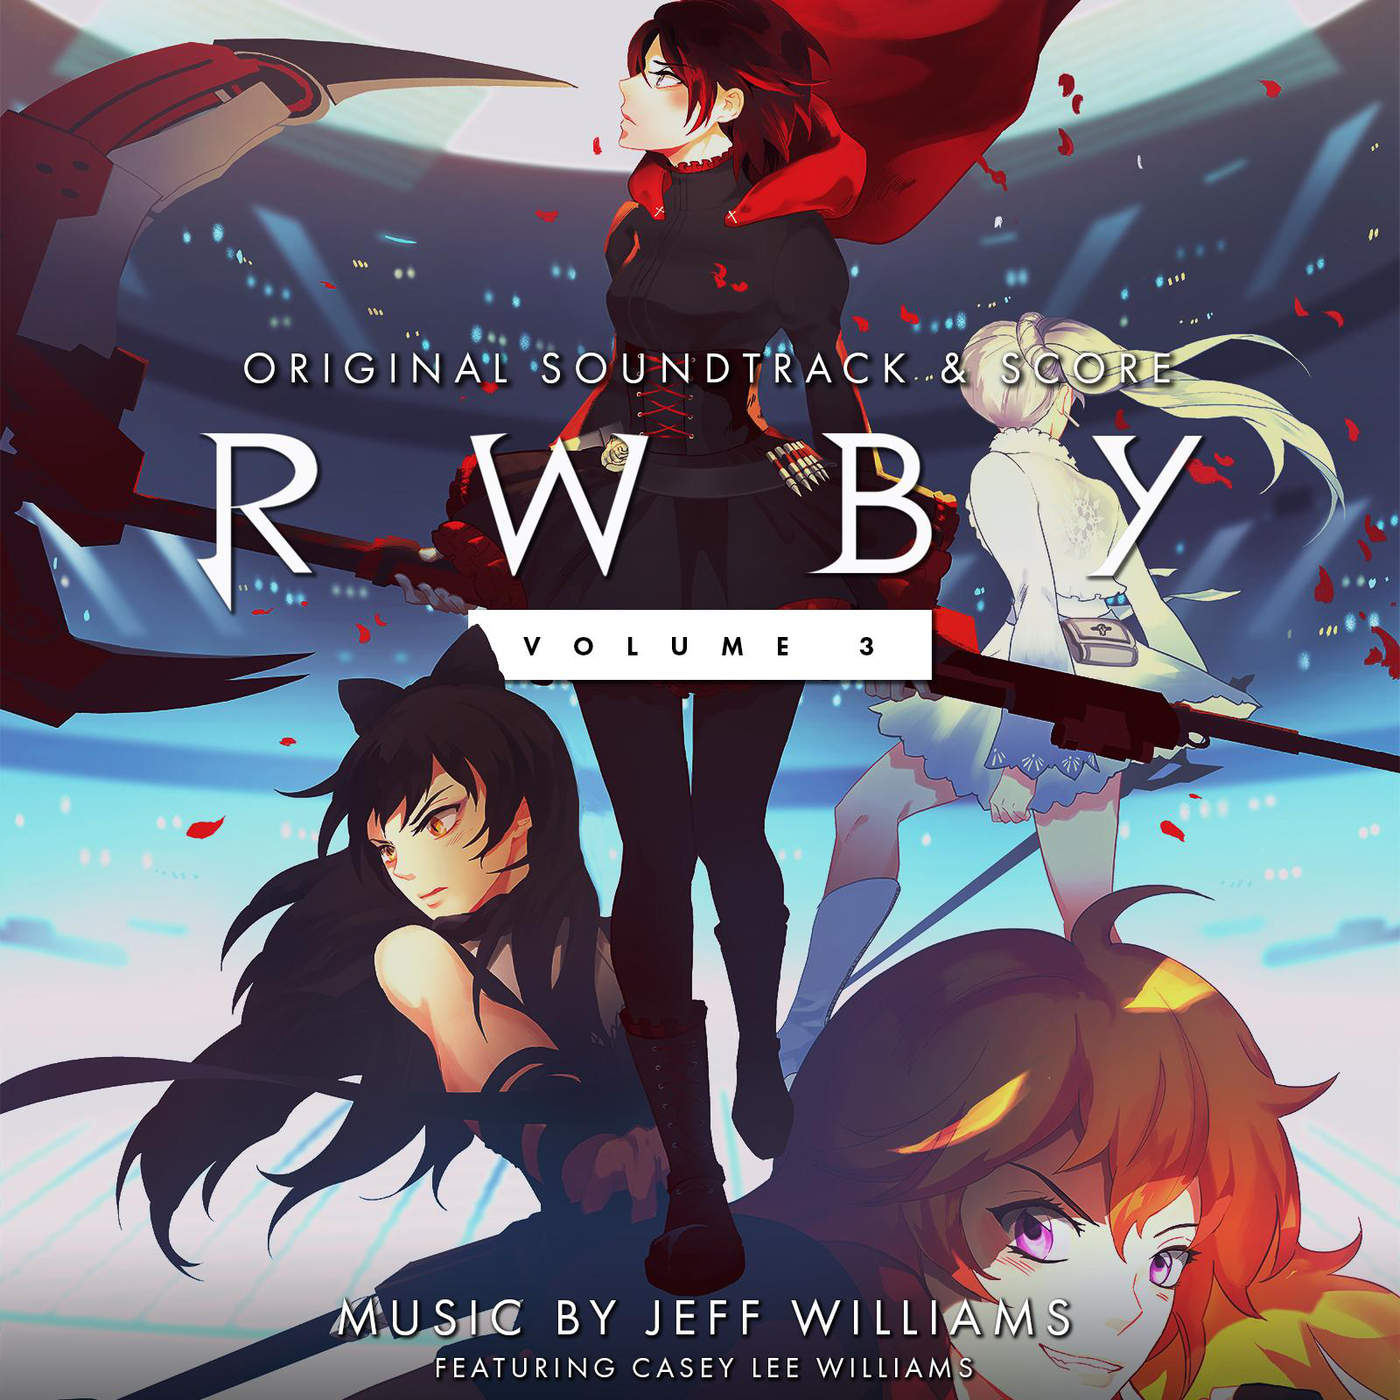 RWBY: Volume 3 Soundtrack | RWBY Wiki | FANDOM powered by Wikia